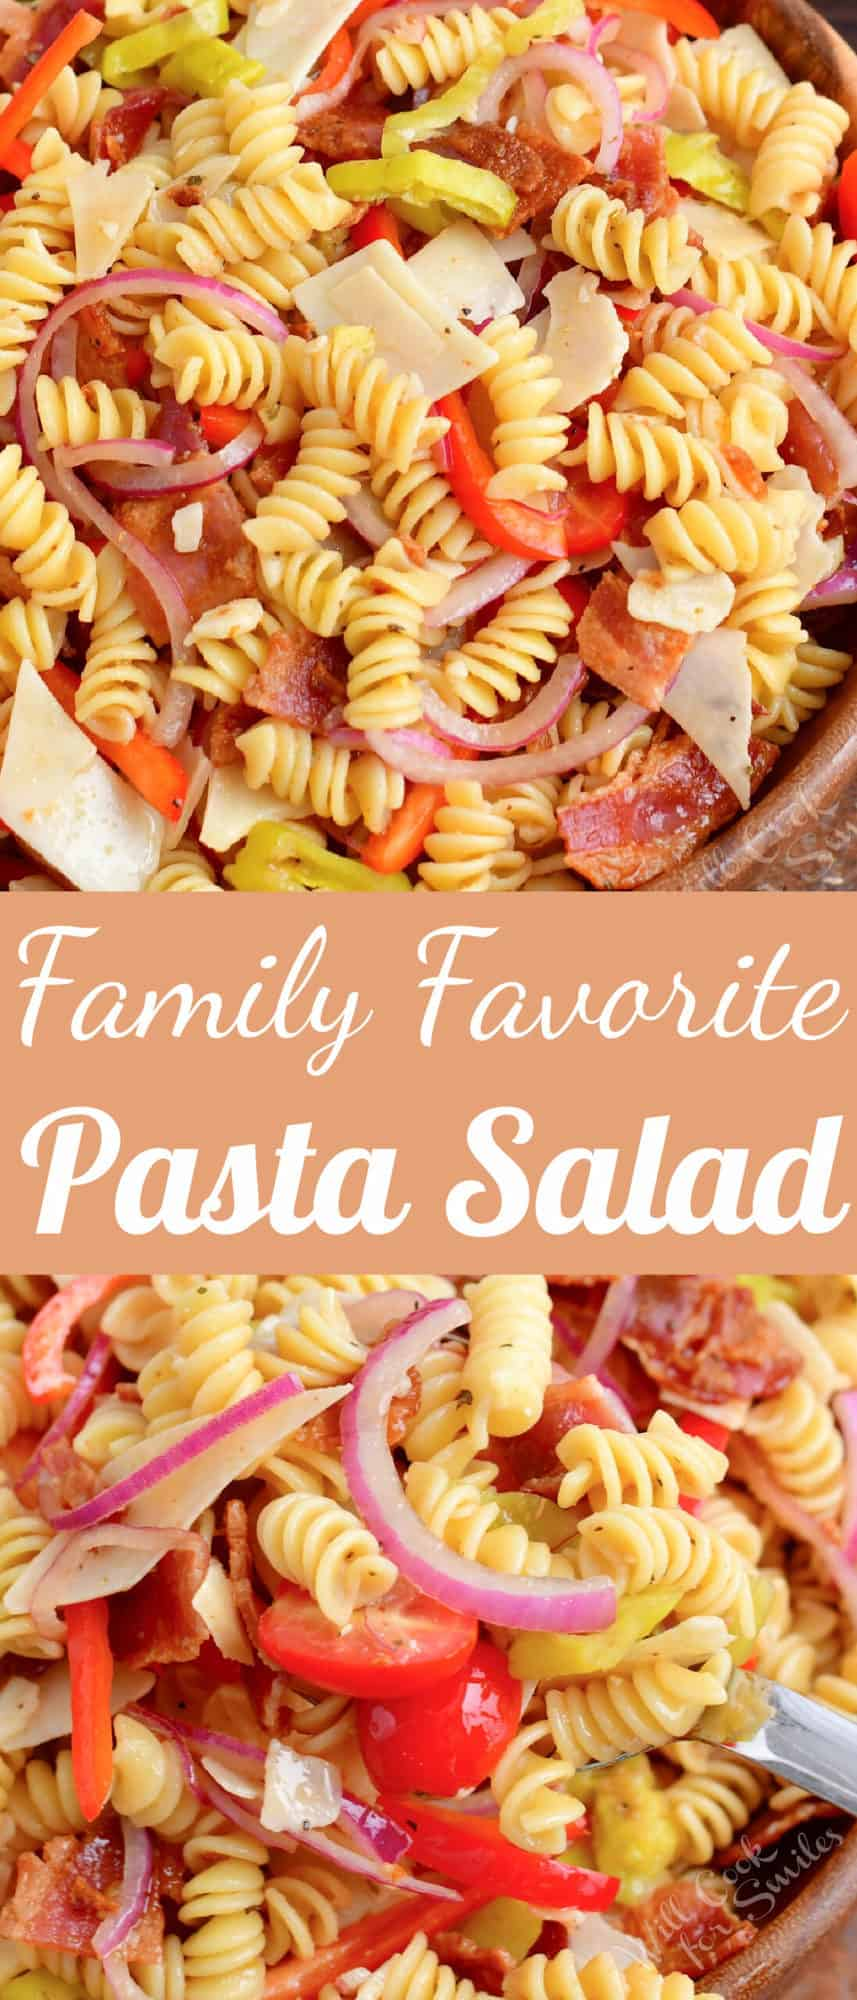 title collage of two close-up images of pasta salad and title in the middle